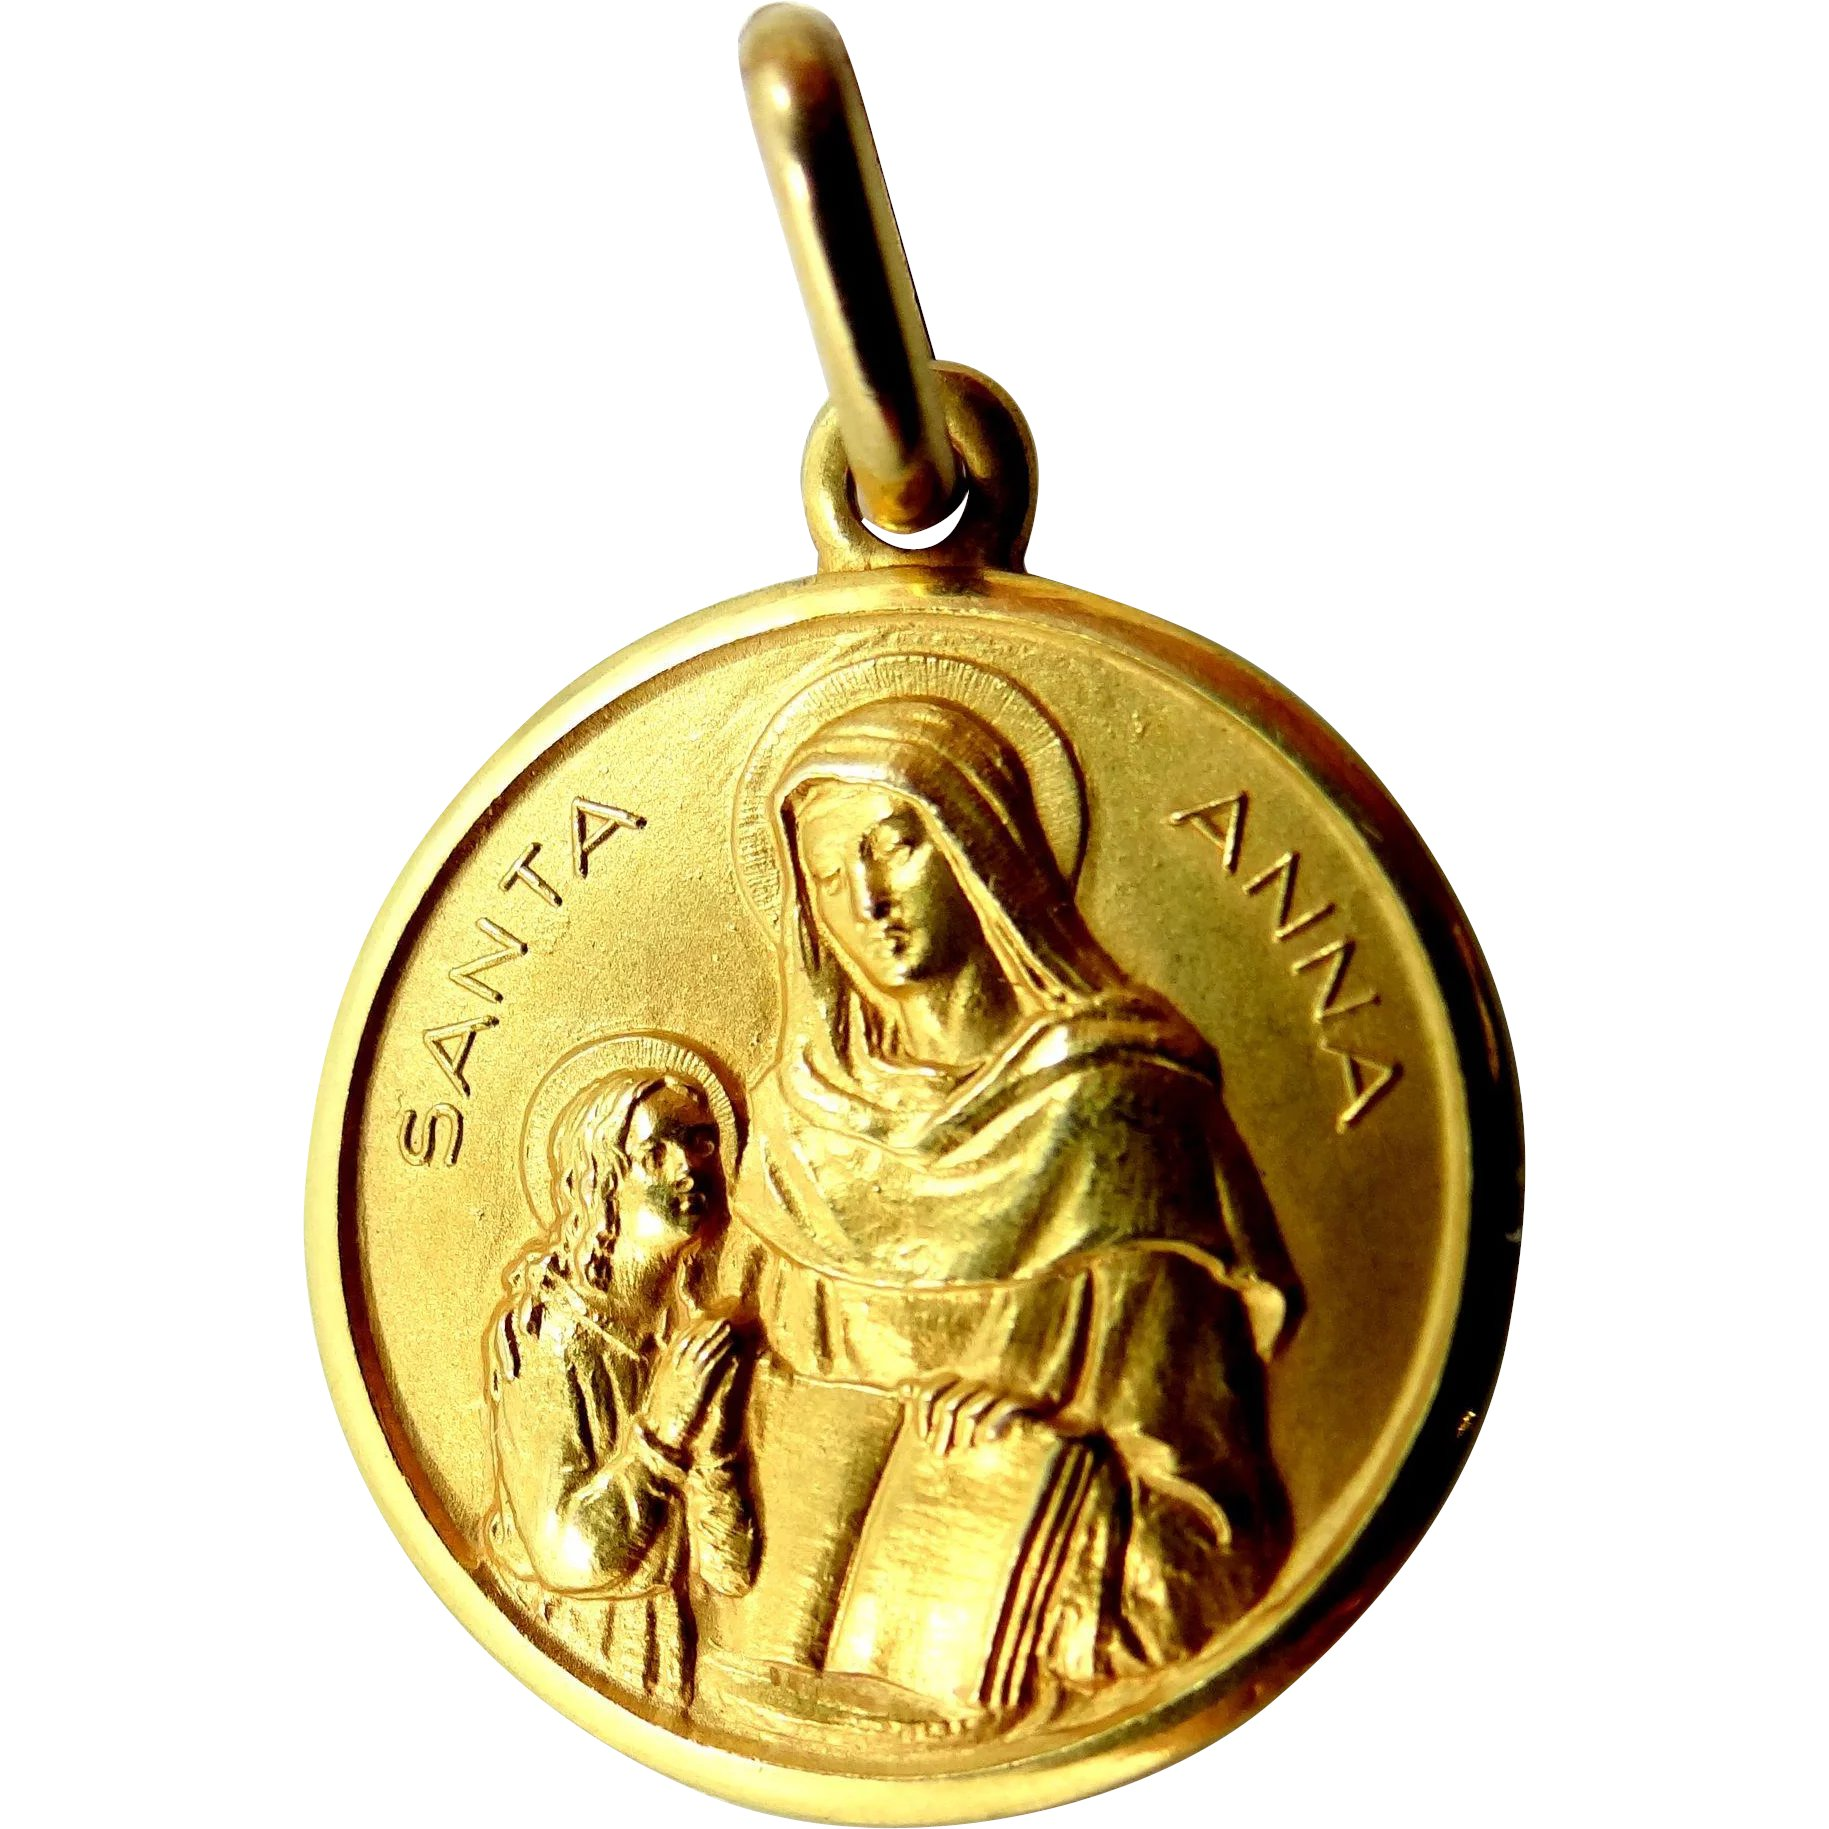 de75322163e 18k Solid Gold St. Anne and the Blessed Mother Medal : Mur-Sadie's Jewelry  | Ruby Lane